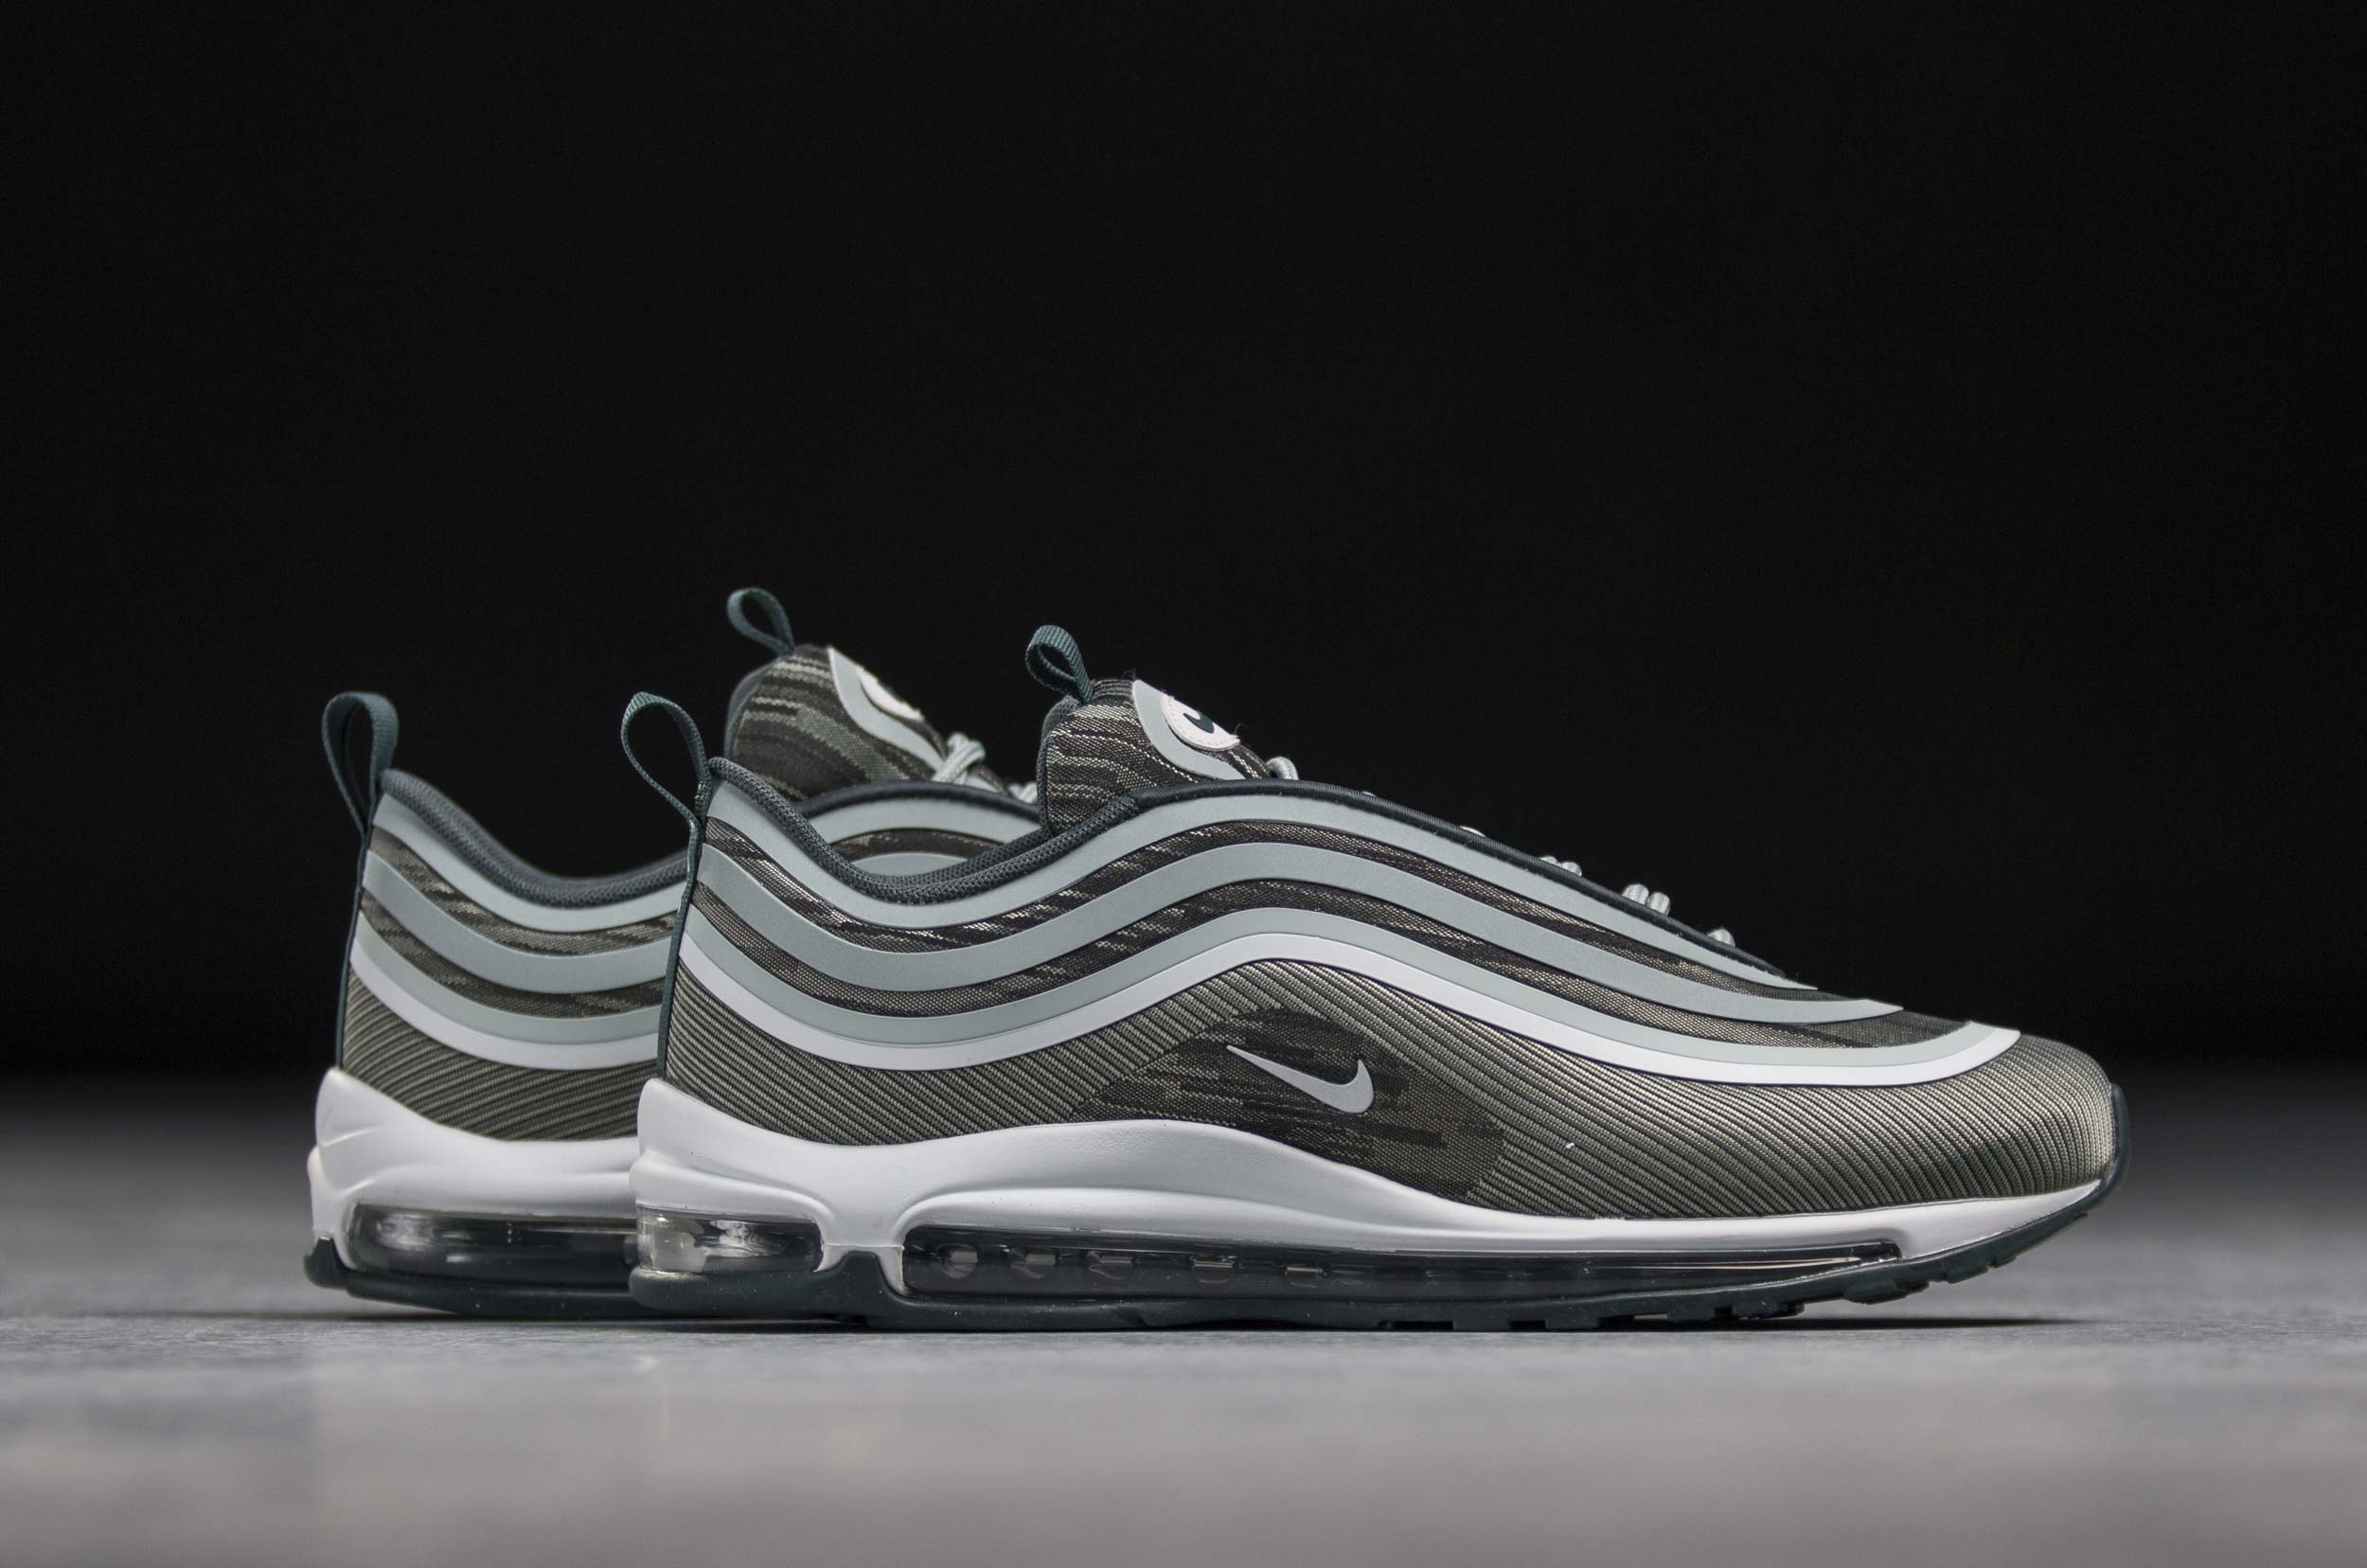 14890704a1a NIKE AIR MAX 97 ULTRA '17 918356-302 Χακί | SneakerCage.gr